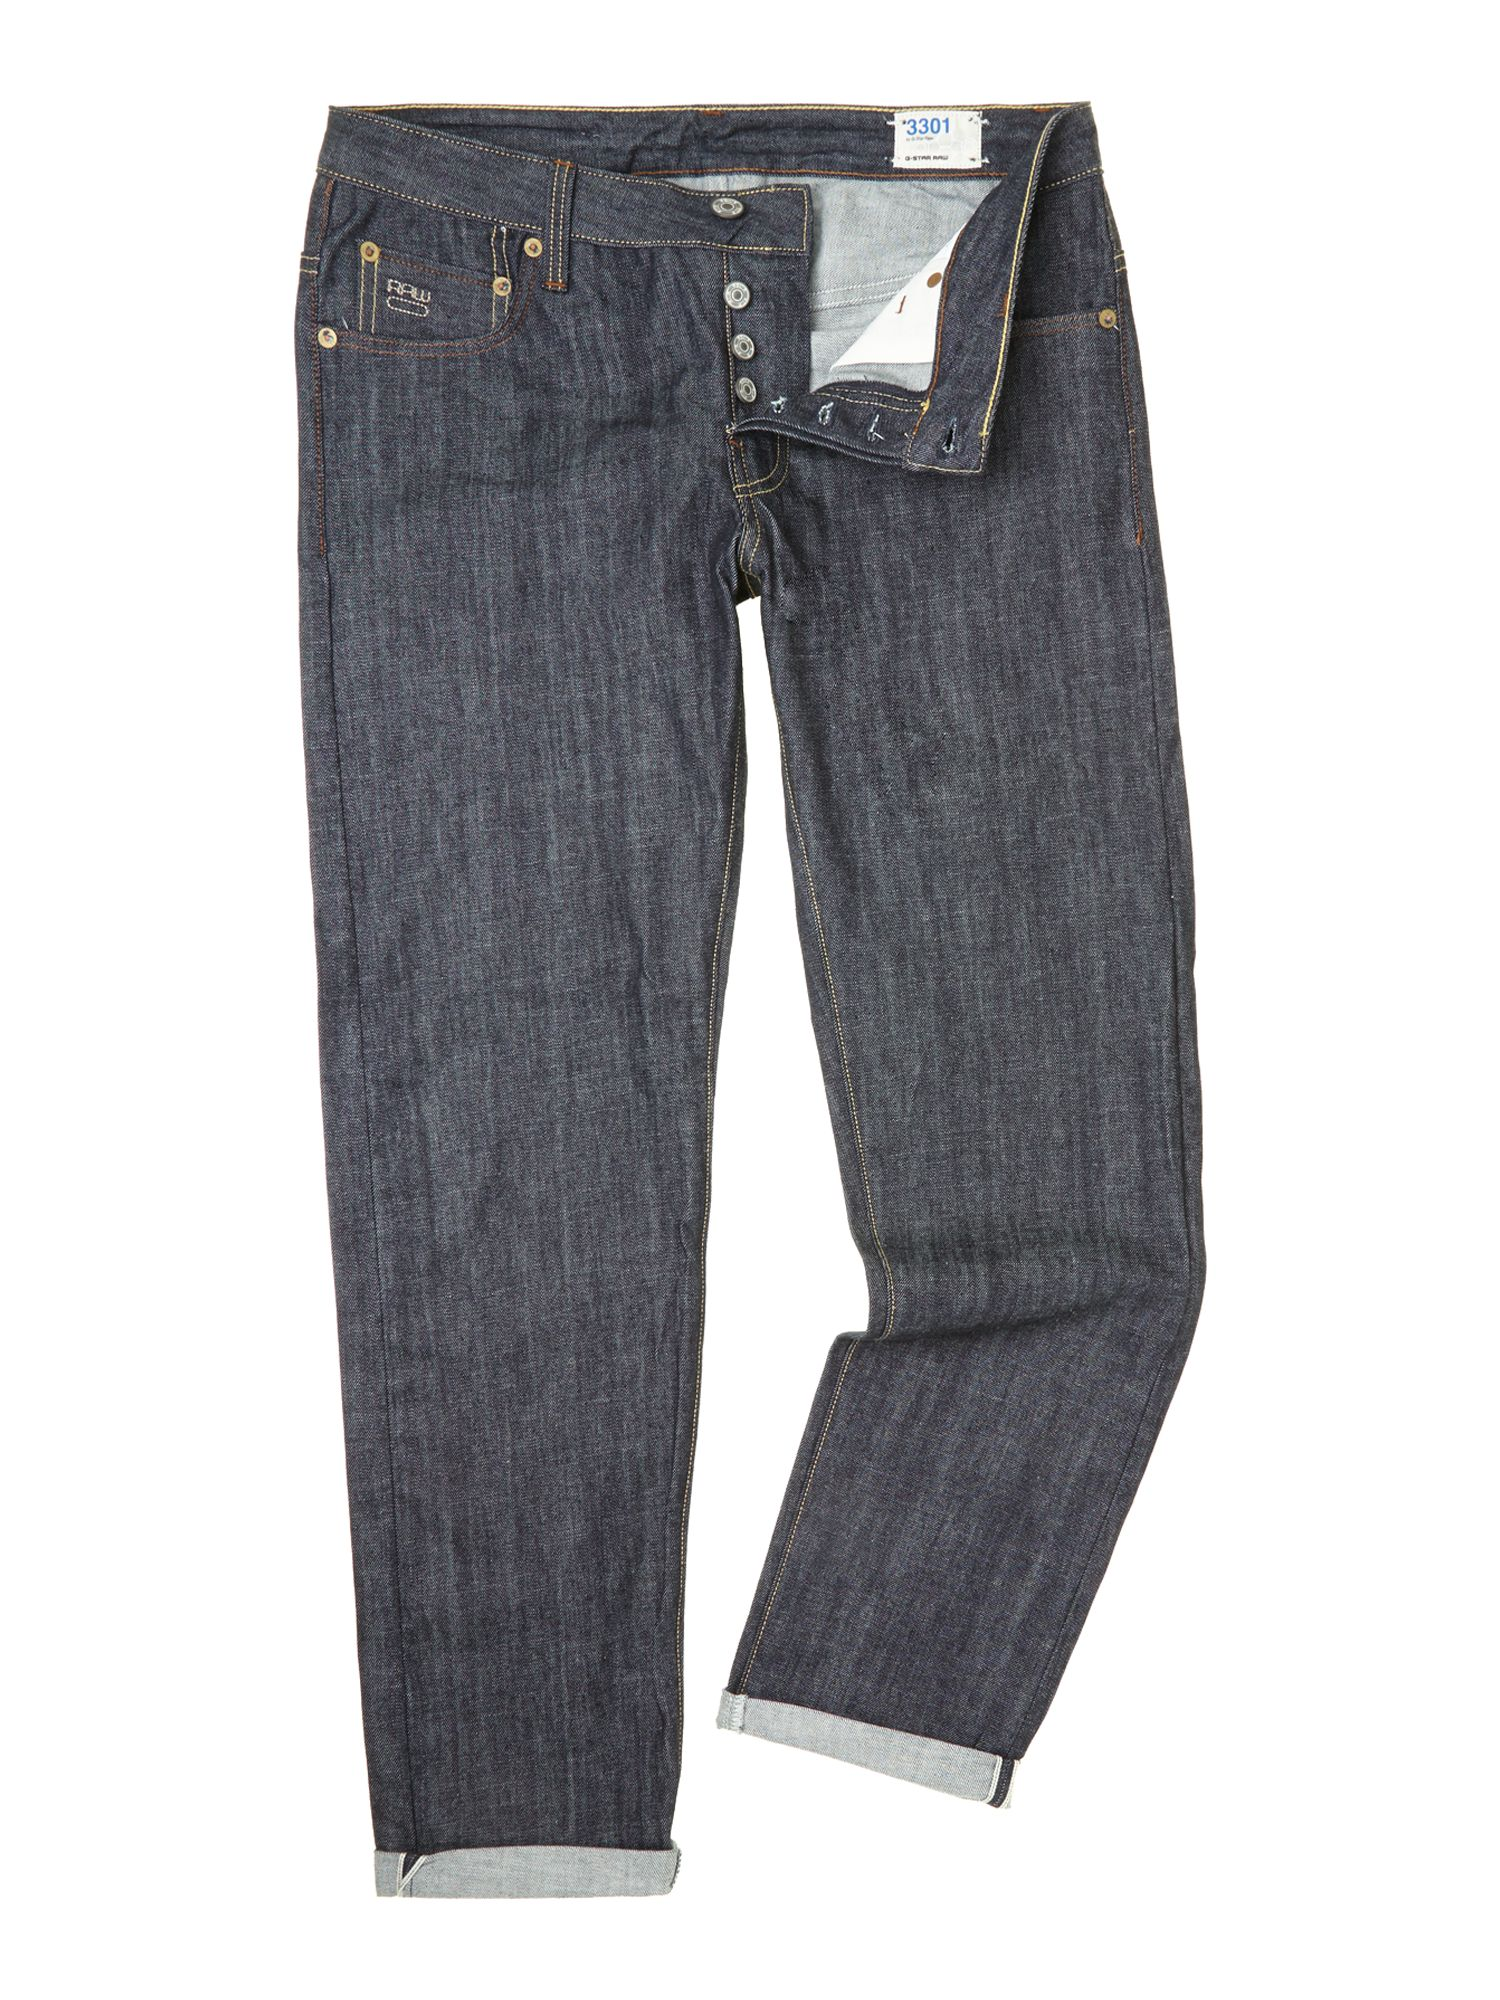 lyst g star raw 3301 low tapered jeans in blue for men. Black Bedroom Furniture Sets. Home Design Ideas